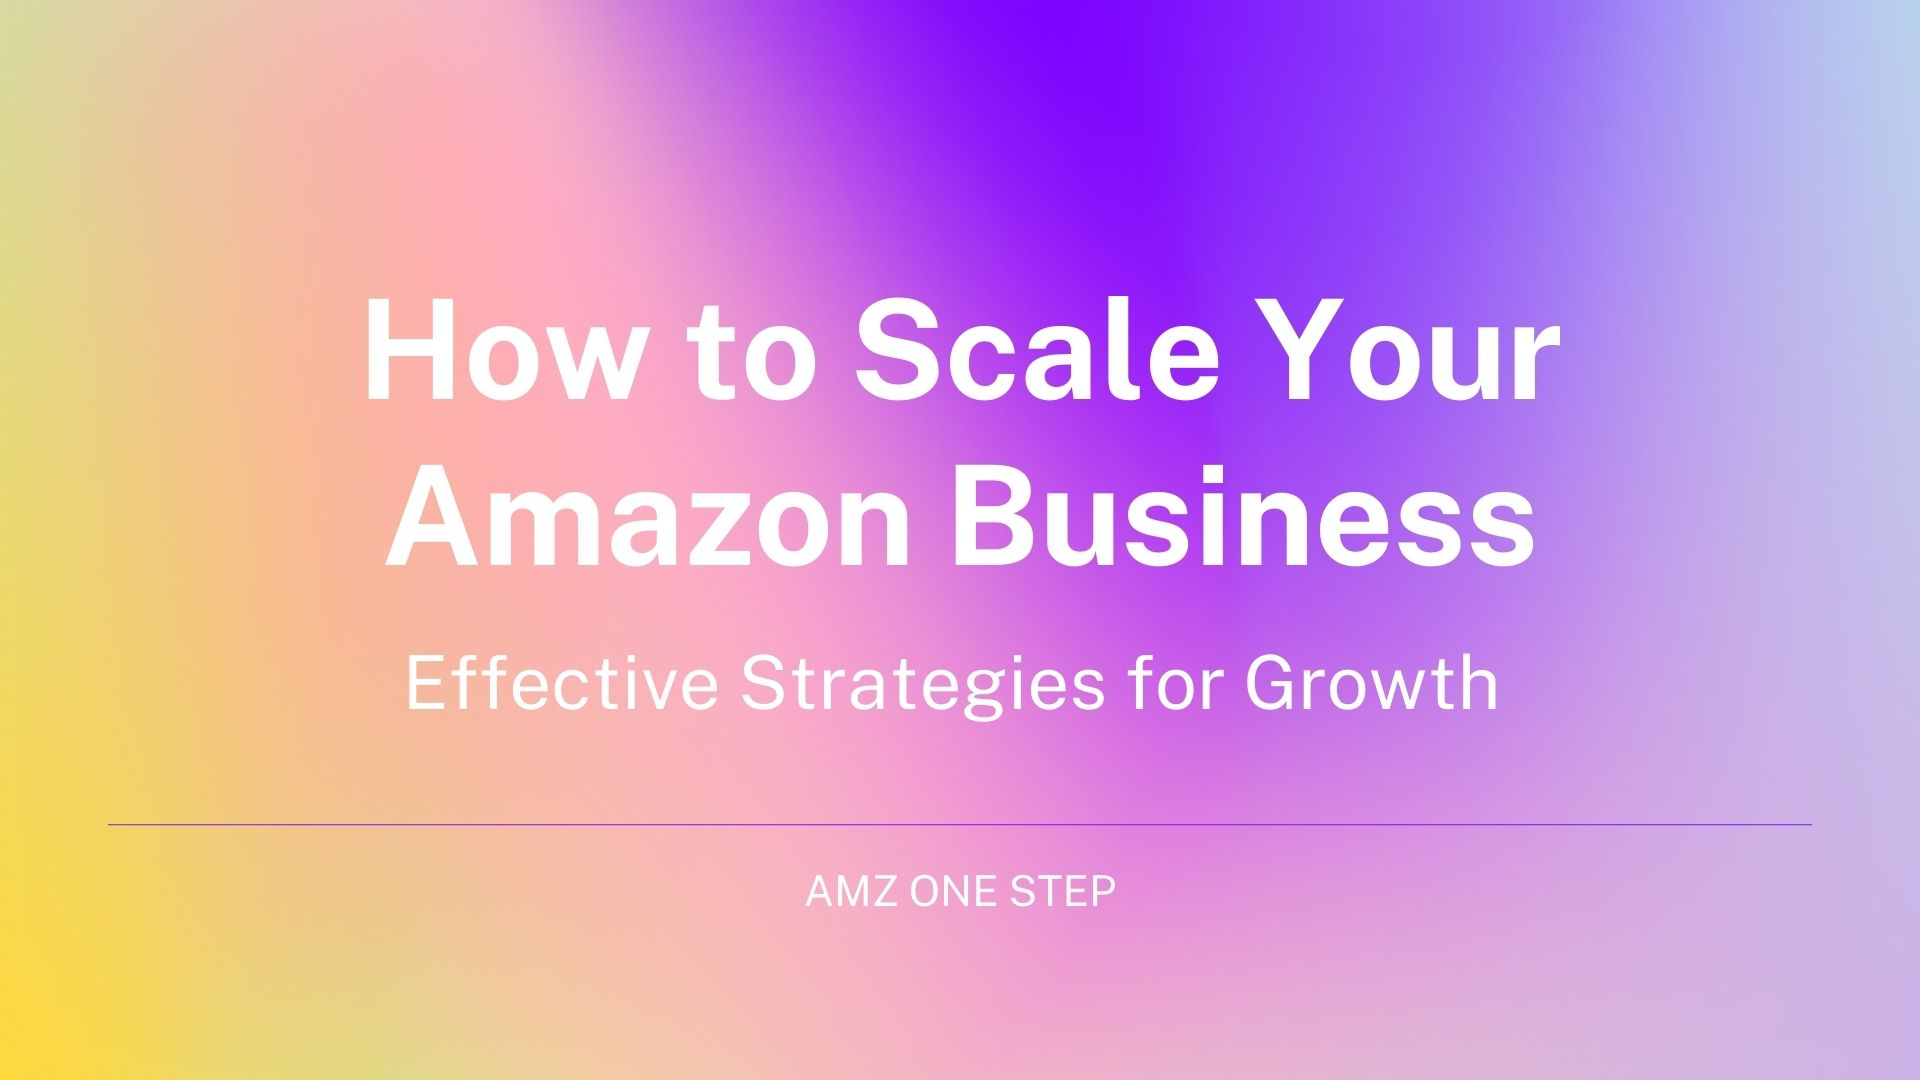 How to Scale Your Amazon Business: Effective Strategies for Growth